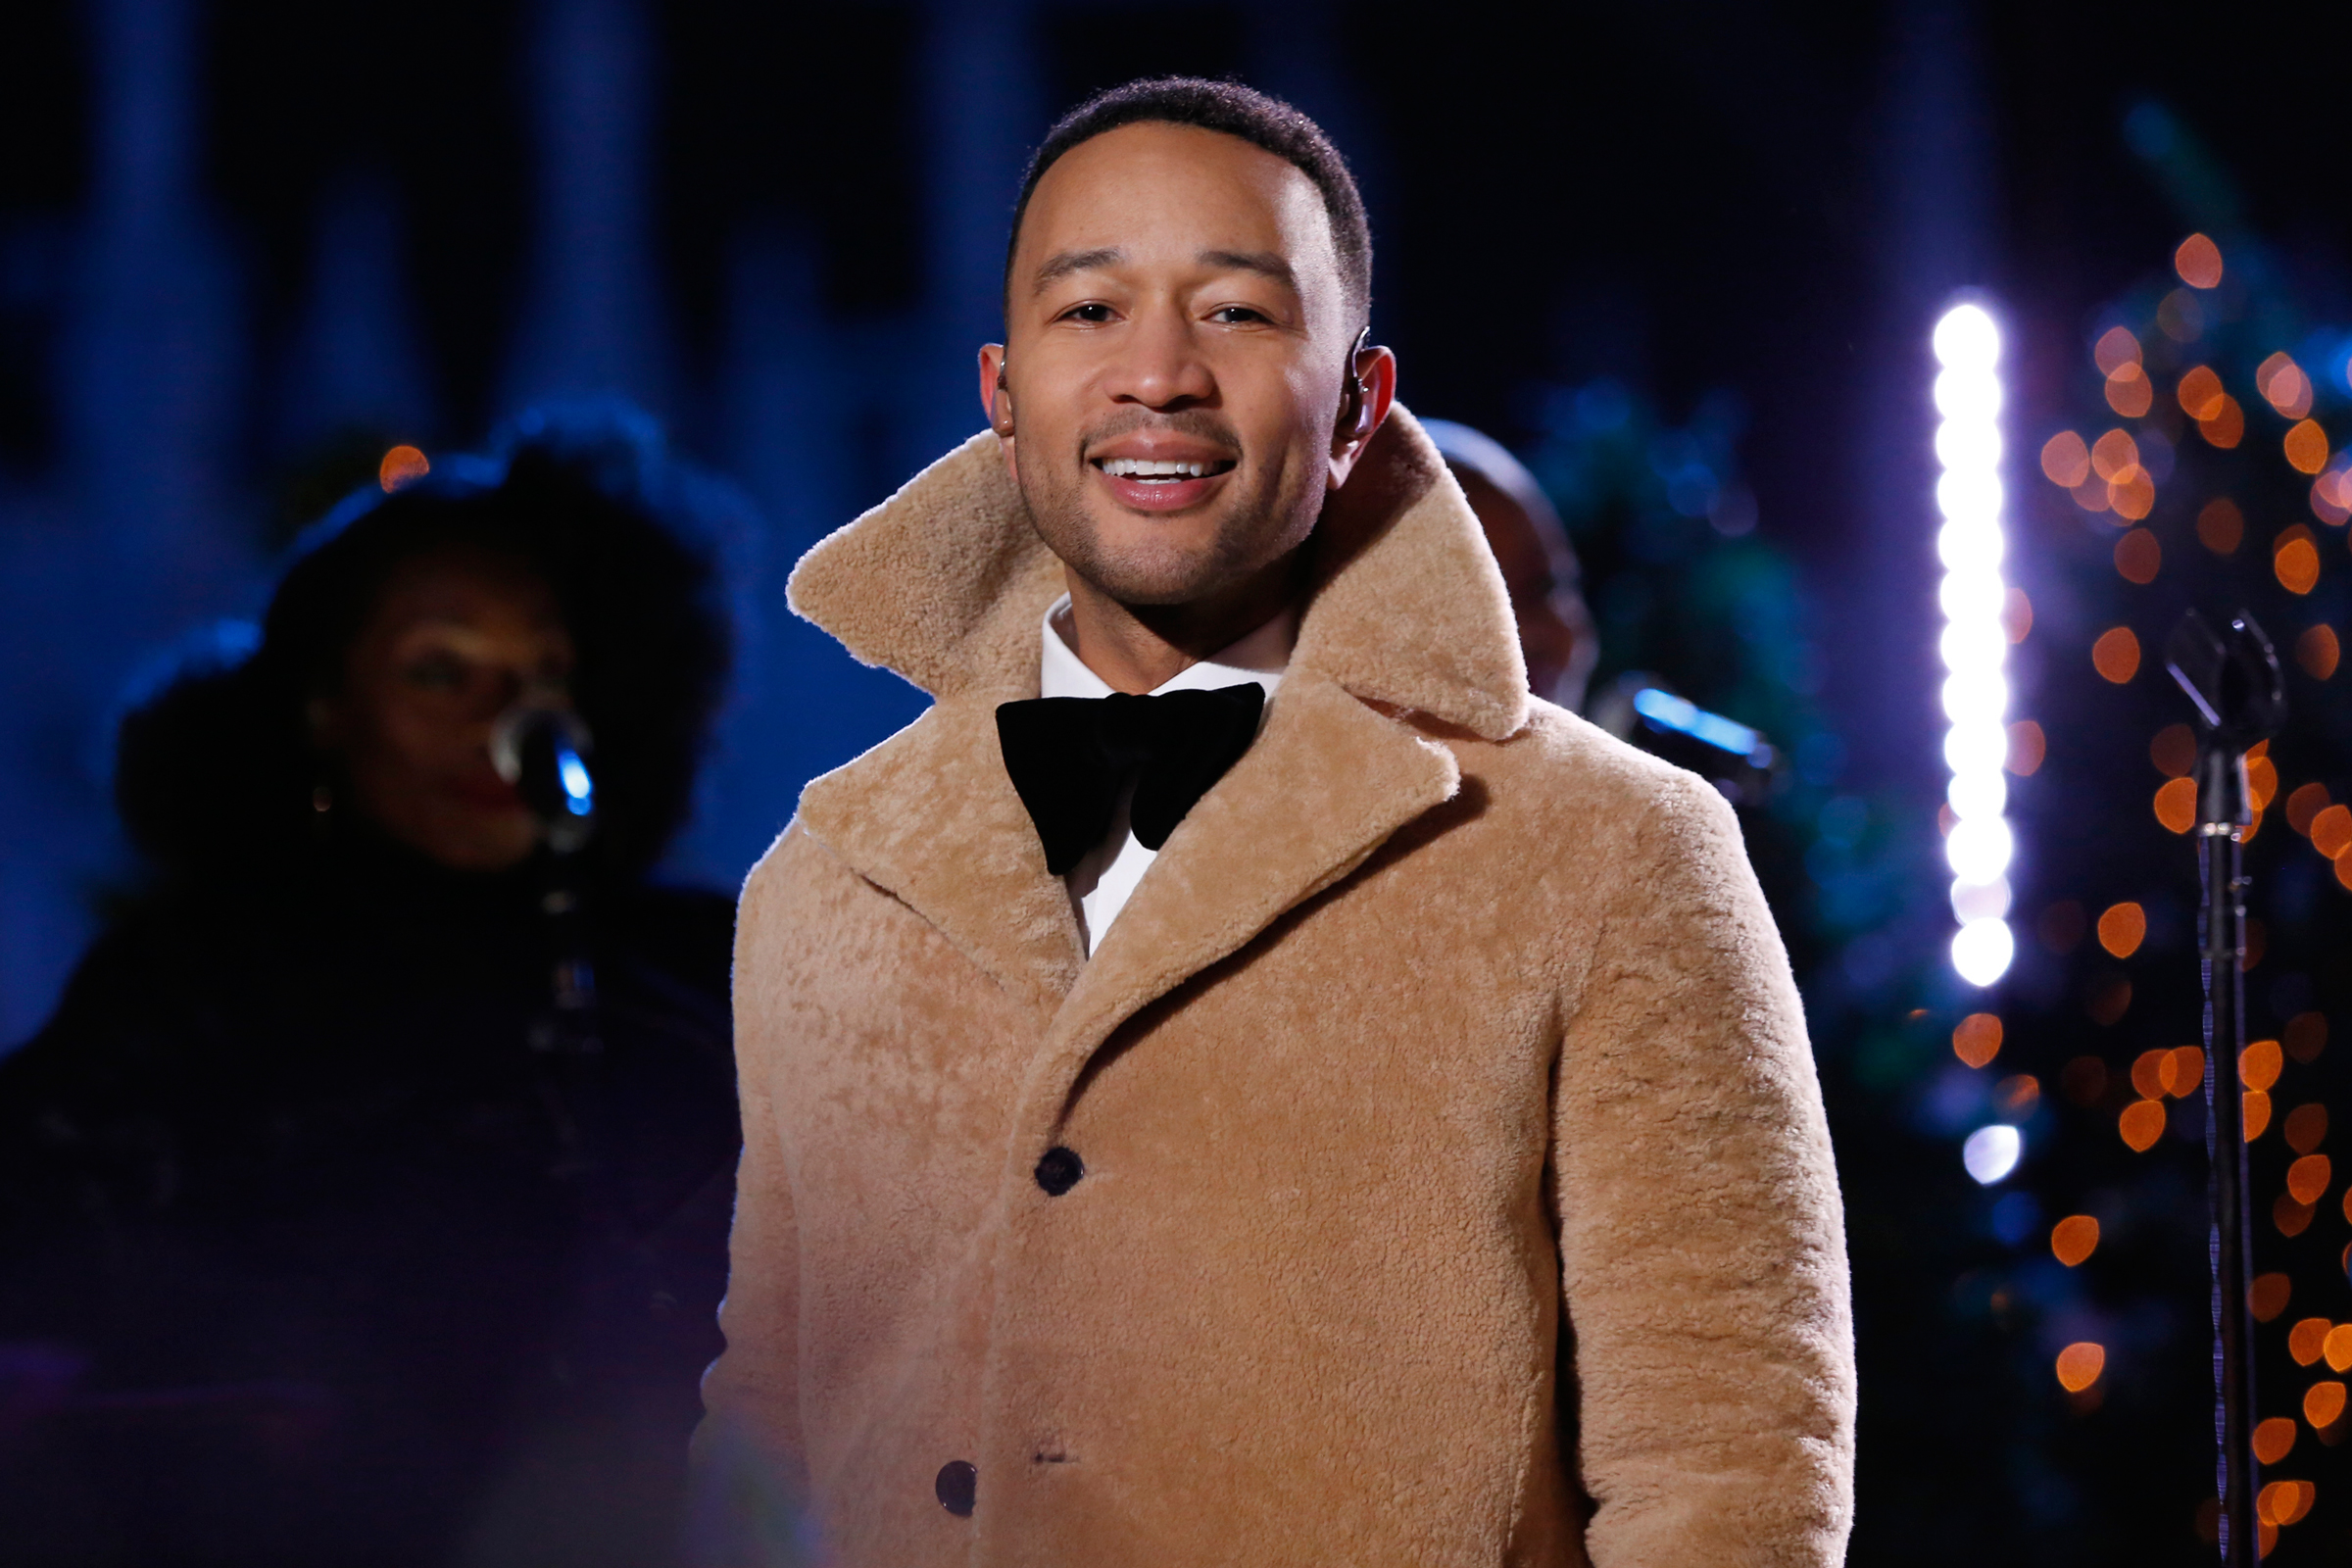 John Legend to Release Deluxe Version of 'A Legendary Christmas' Album - Rolling Stone